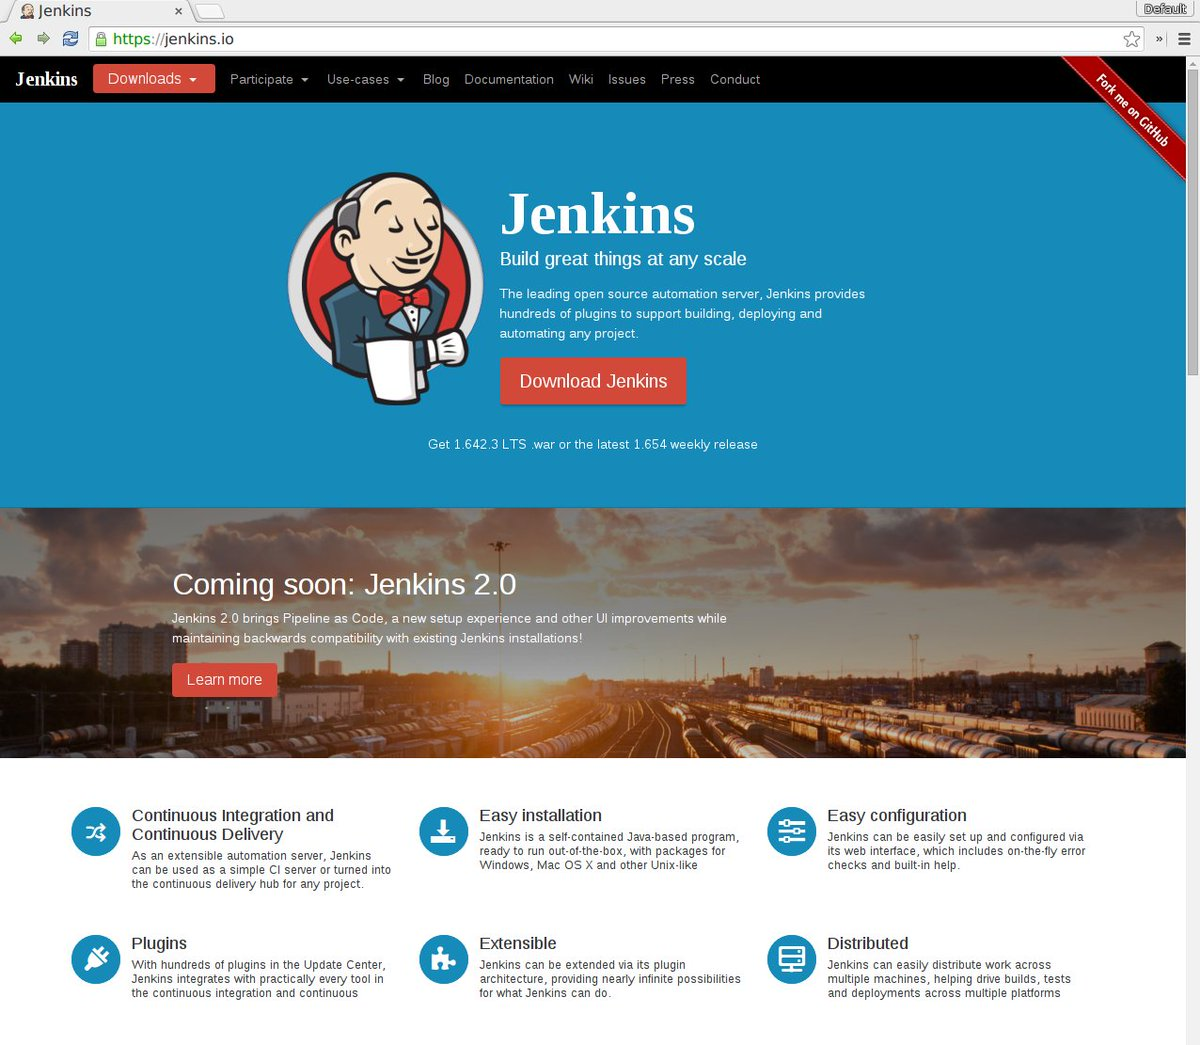 Just in time for #jenkins2, I got a make-over  https://t.co/O702oFx2cT https://t.co/dt5EjZwVwr